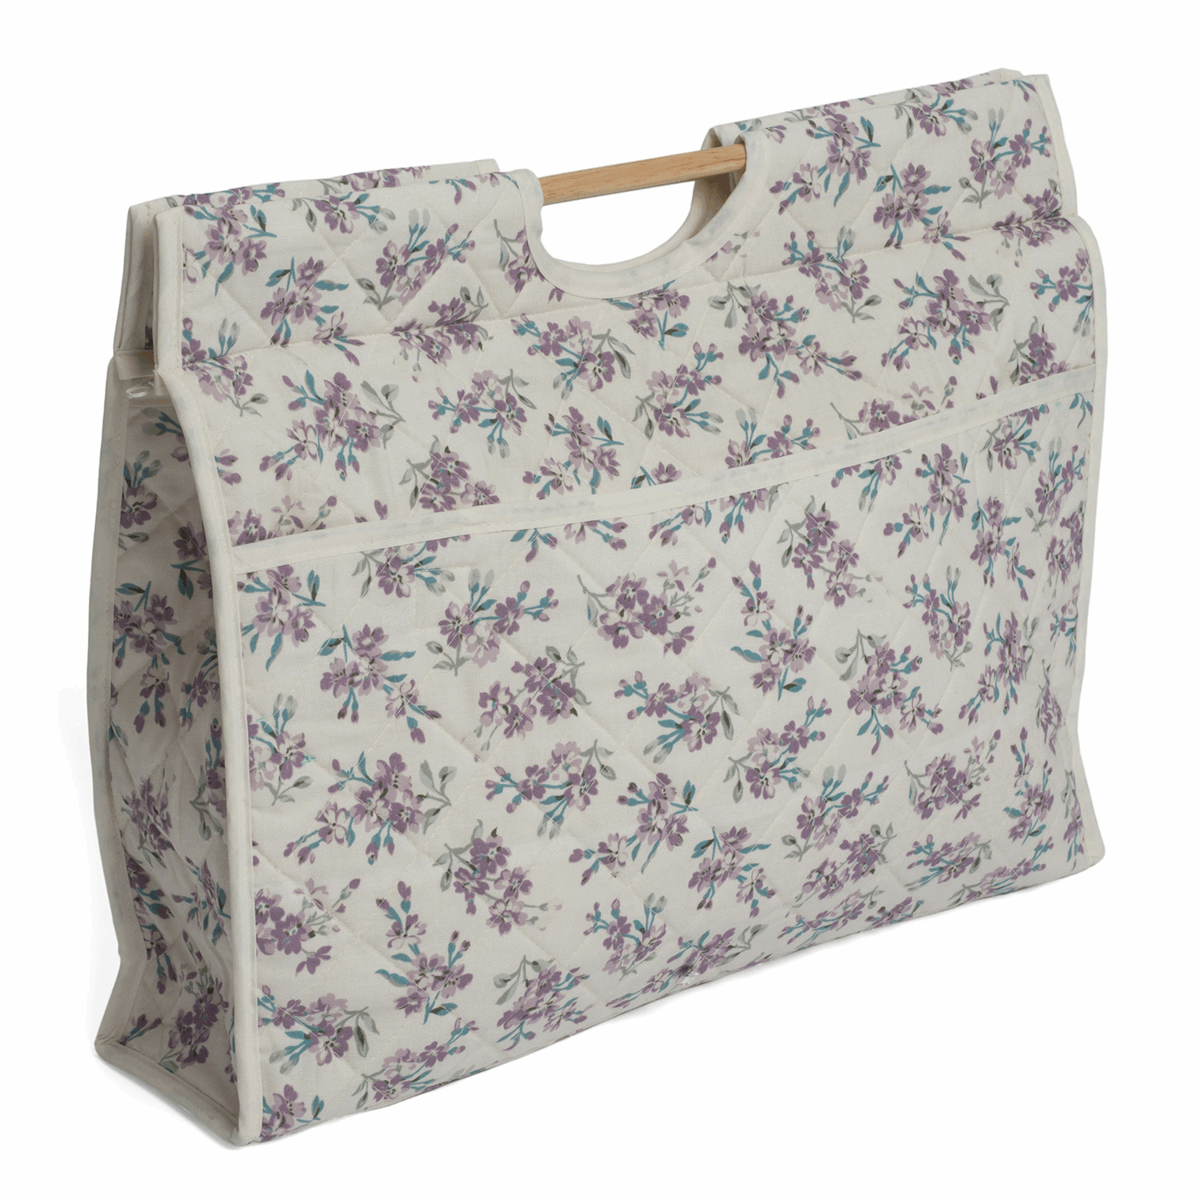 Picture of Craft Bag with Wooden Handles: Chambray Rose Cream